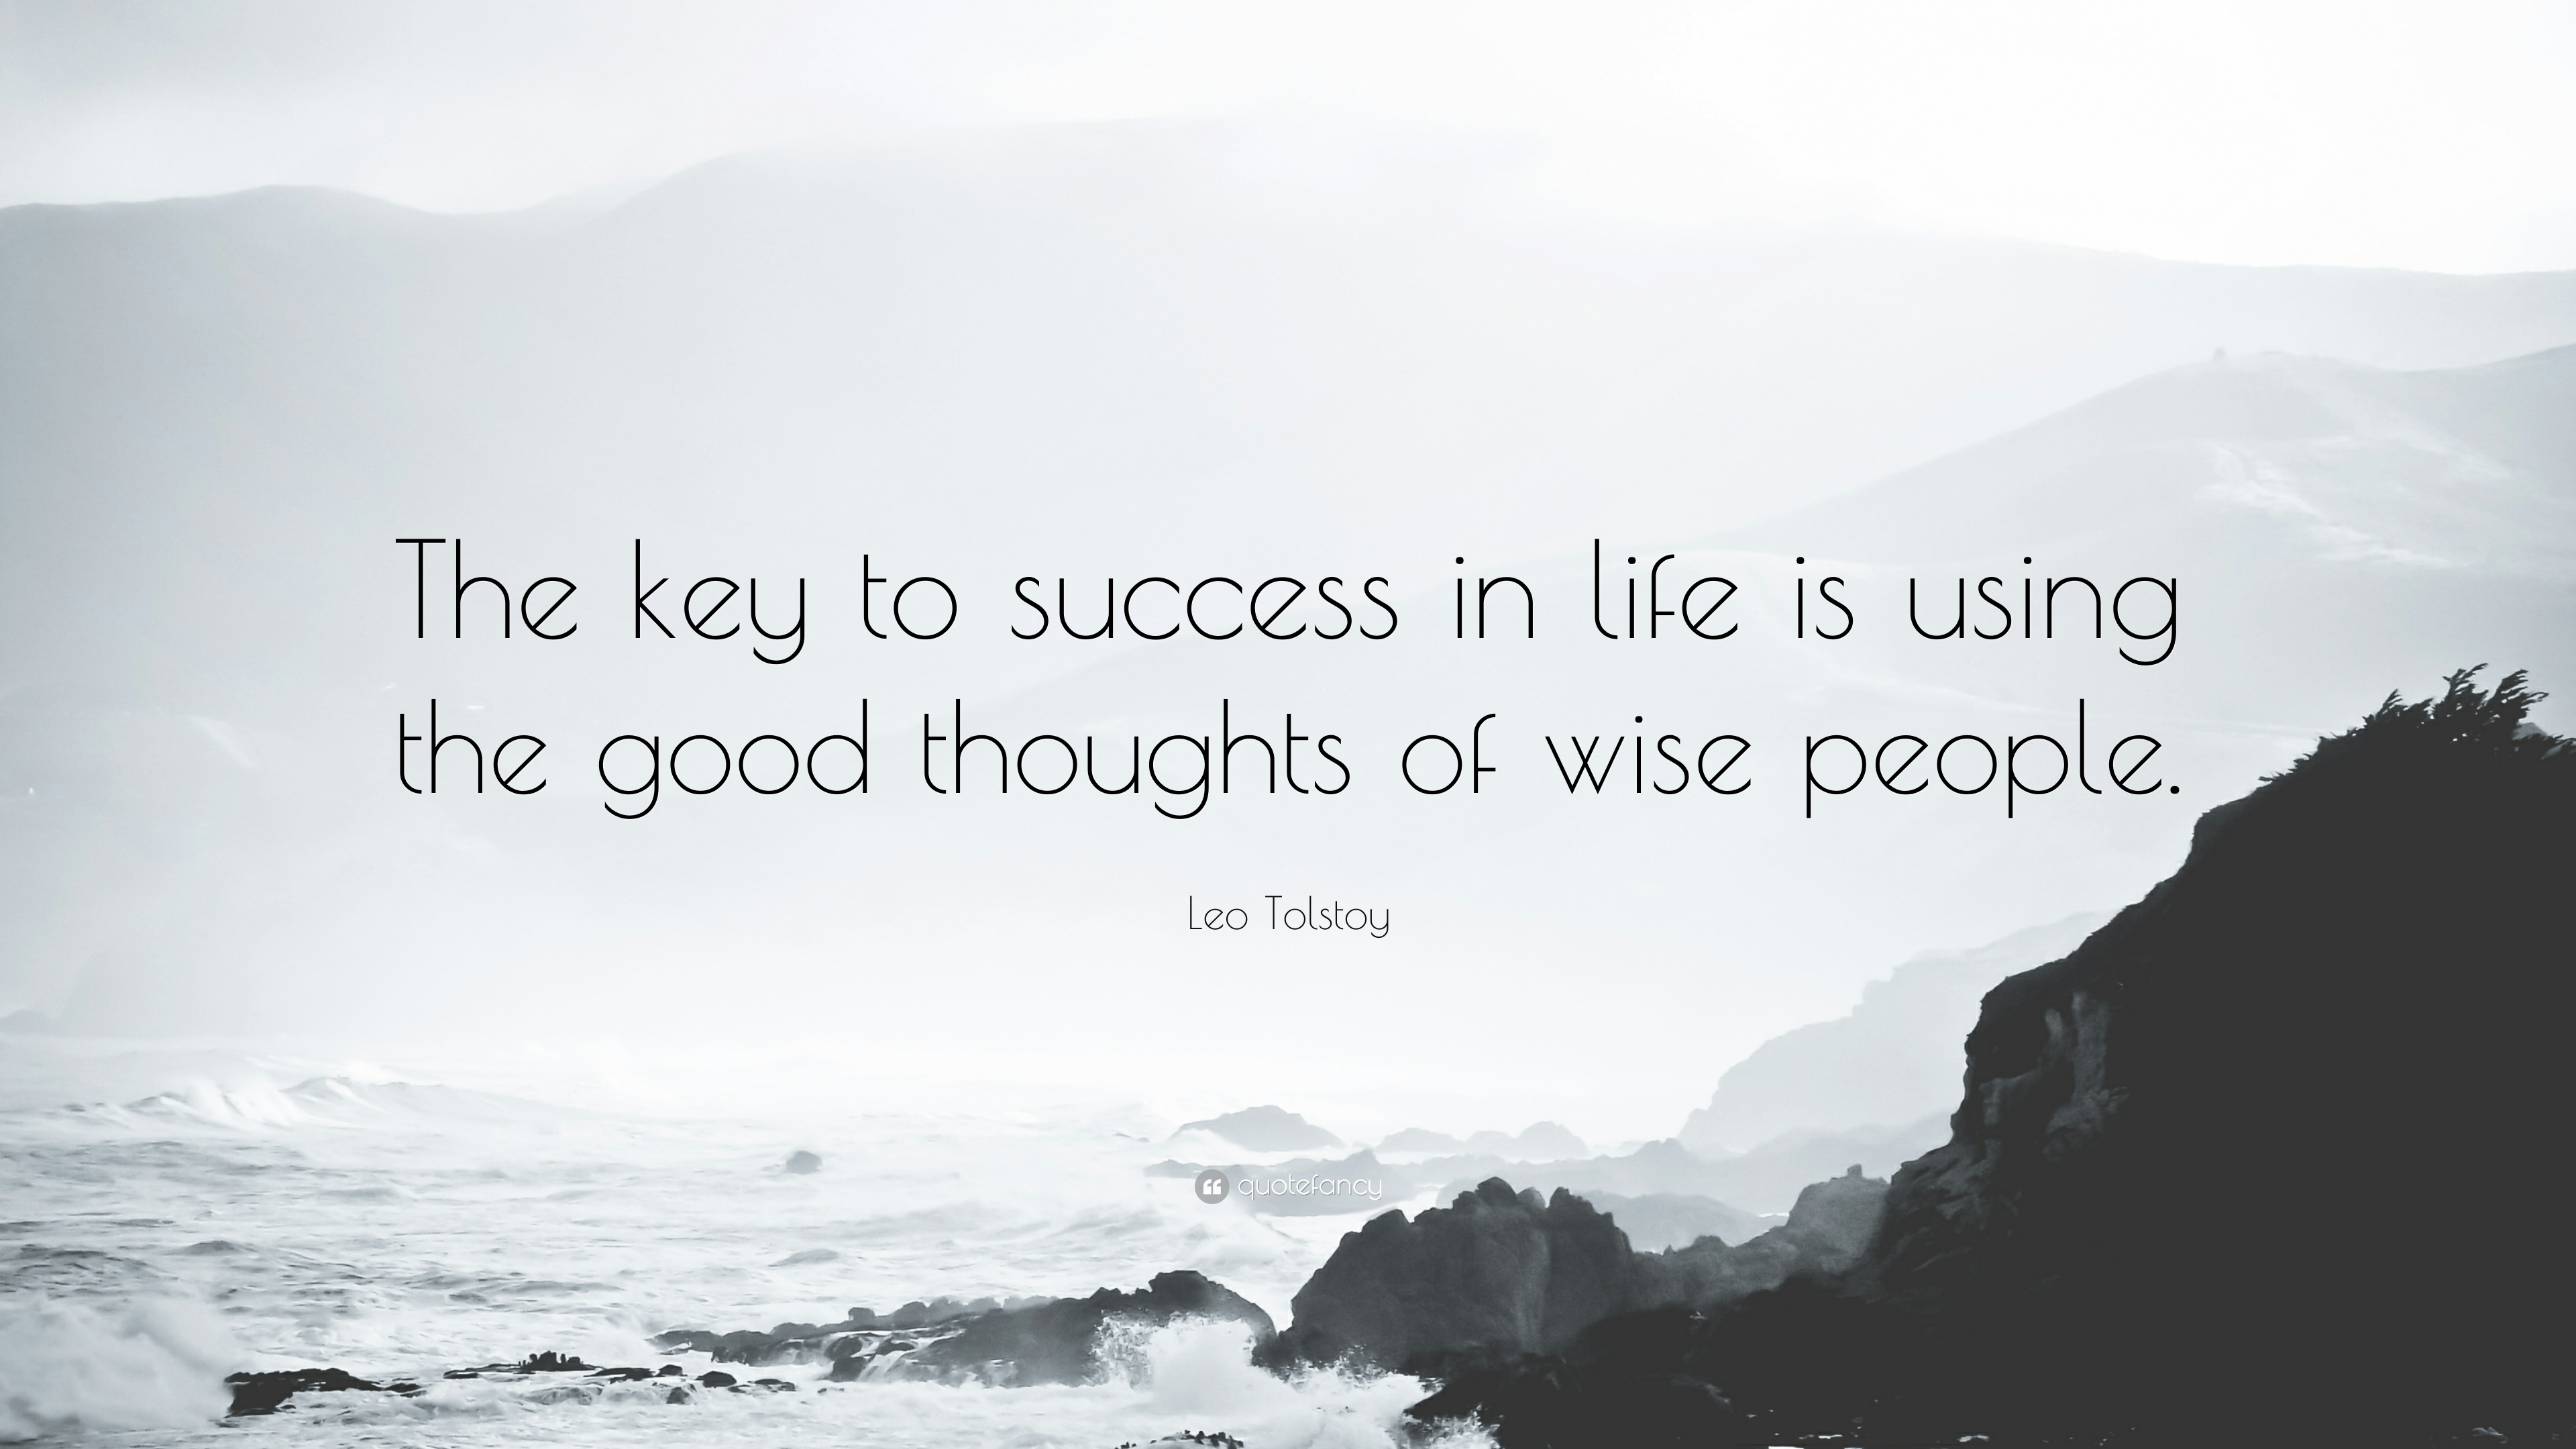 Leo Tolstoy Quote The Key To Success In Life Is Using The Good Thoughts Of Wise People 12 Wallpapers Quotefancy